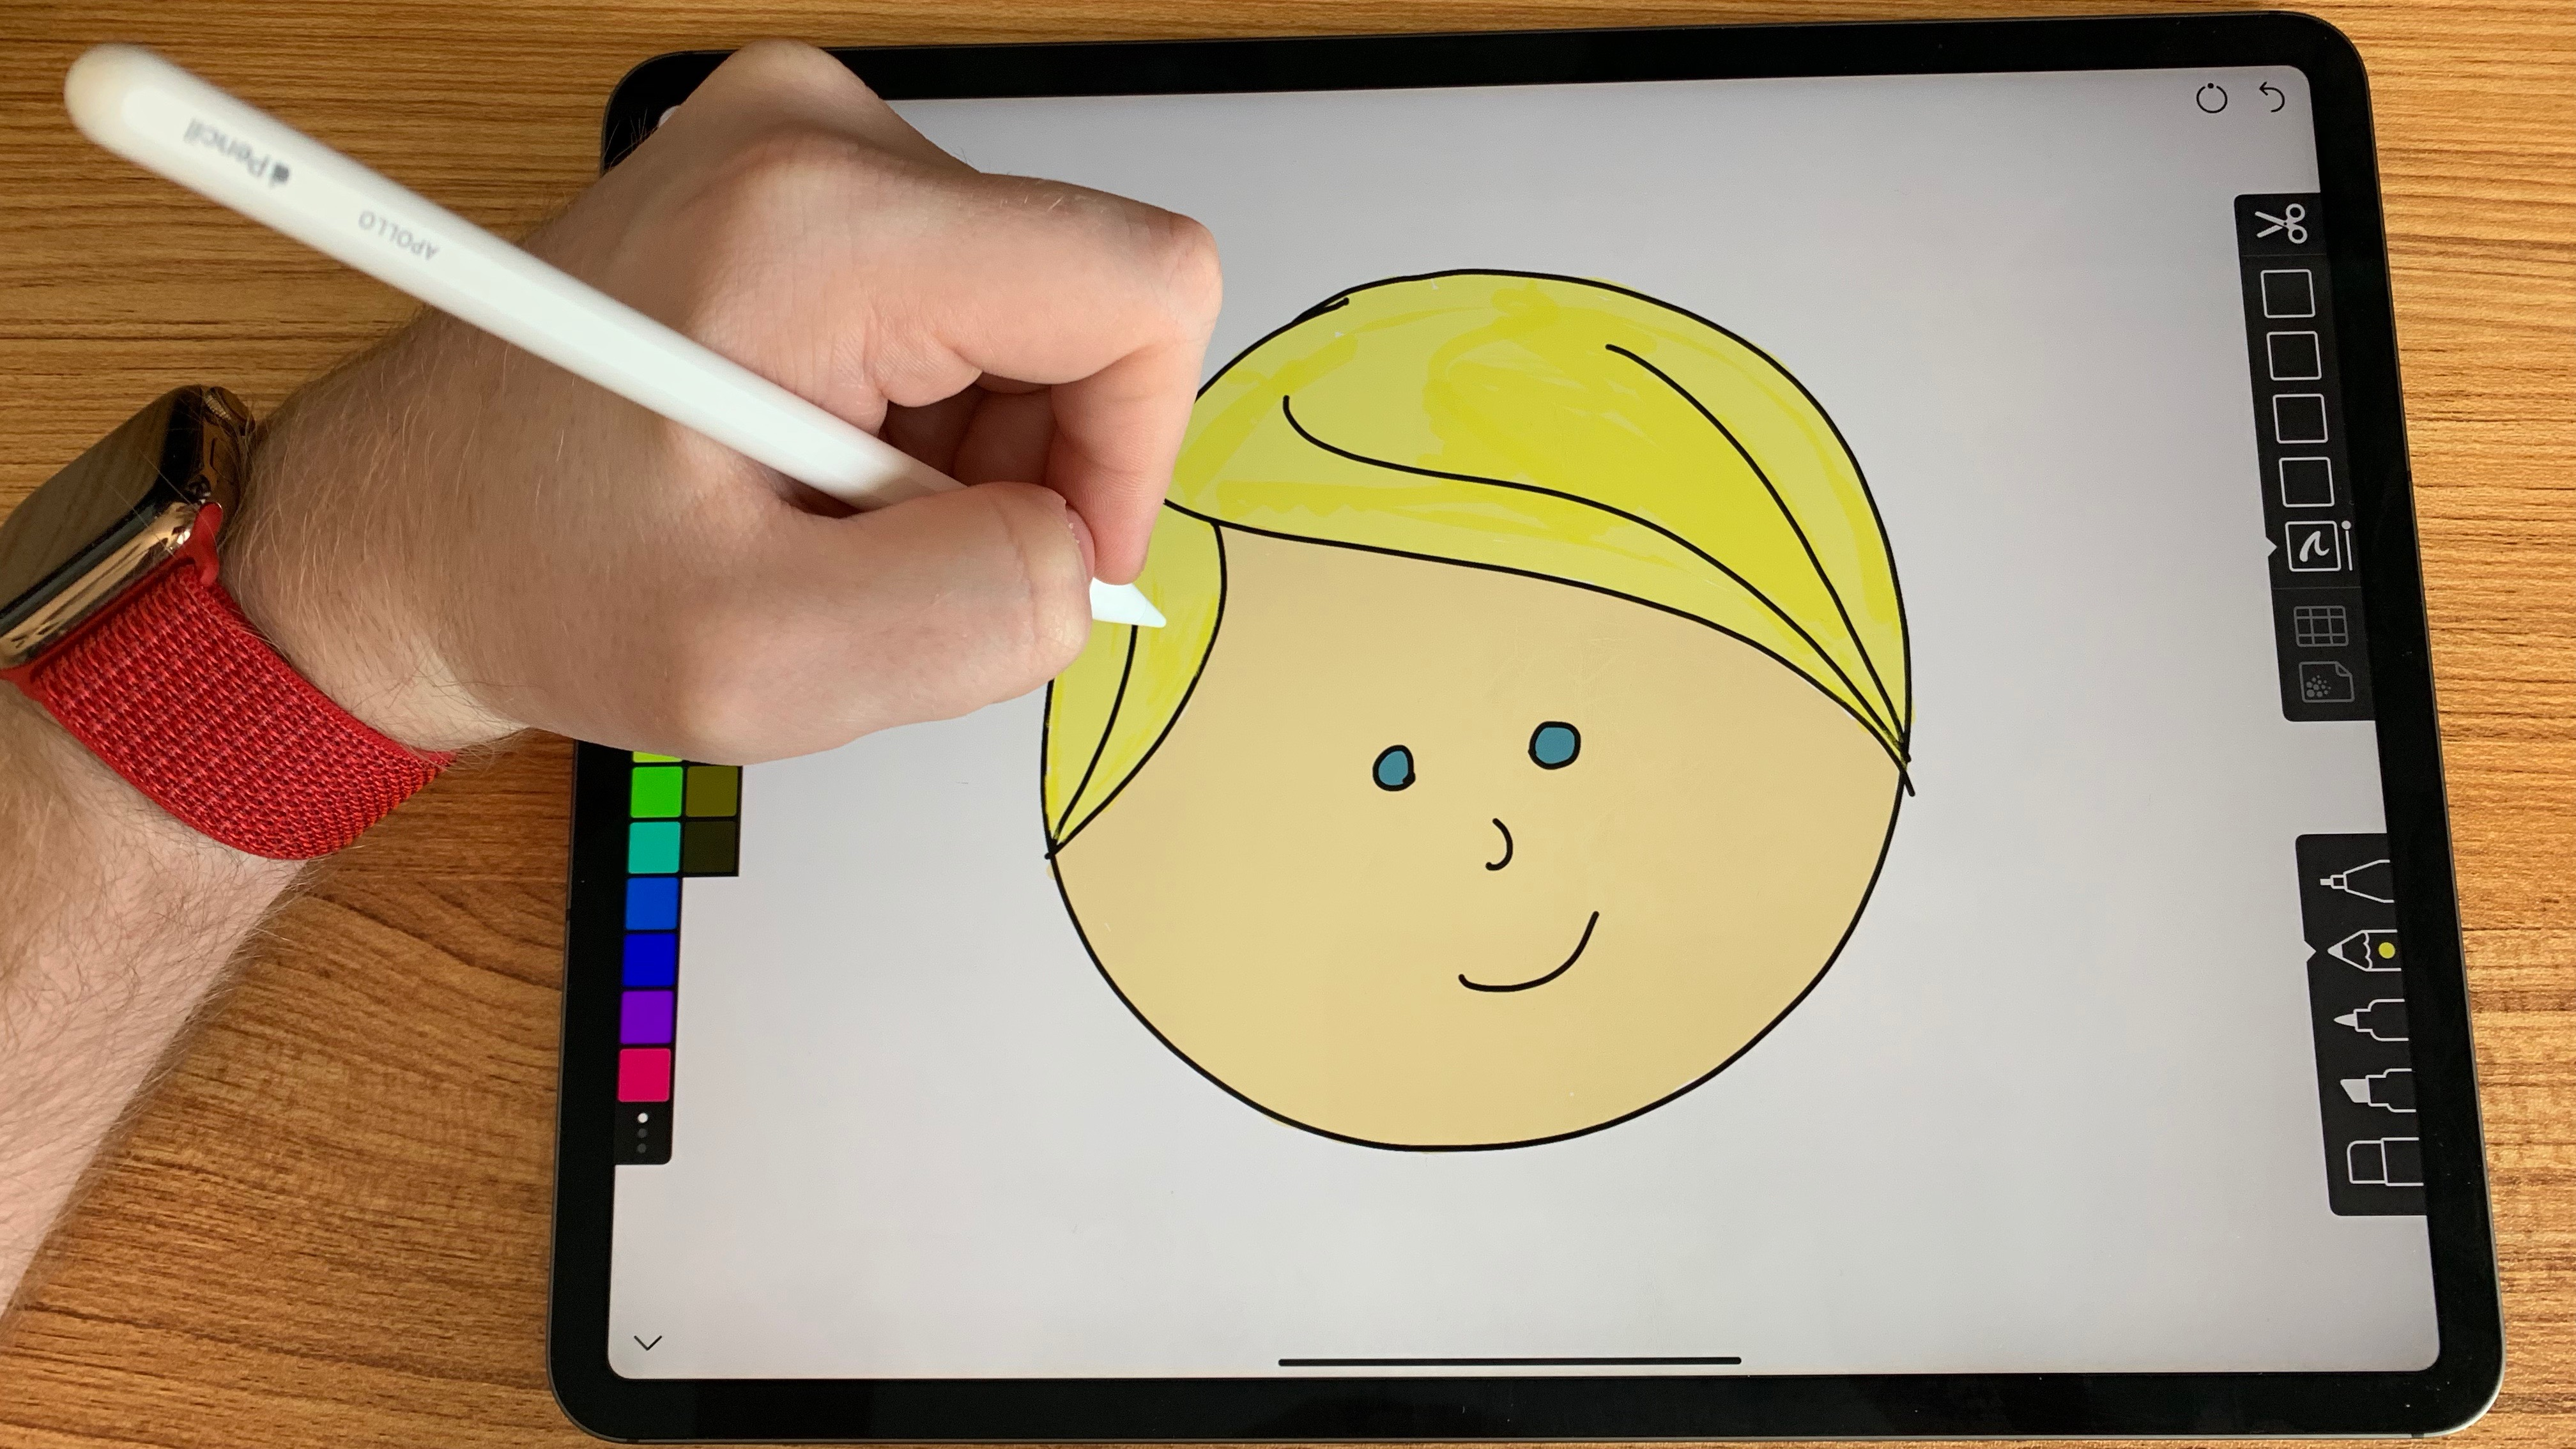 Linea sketch updated for ipad pro with apple pencil gestures new fill and blending tools more